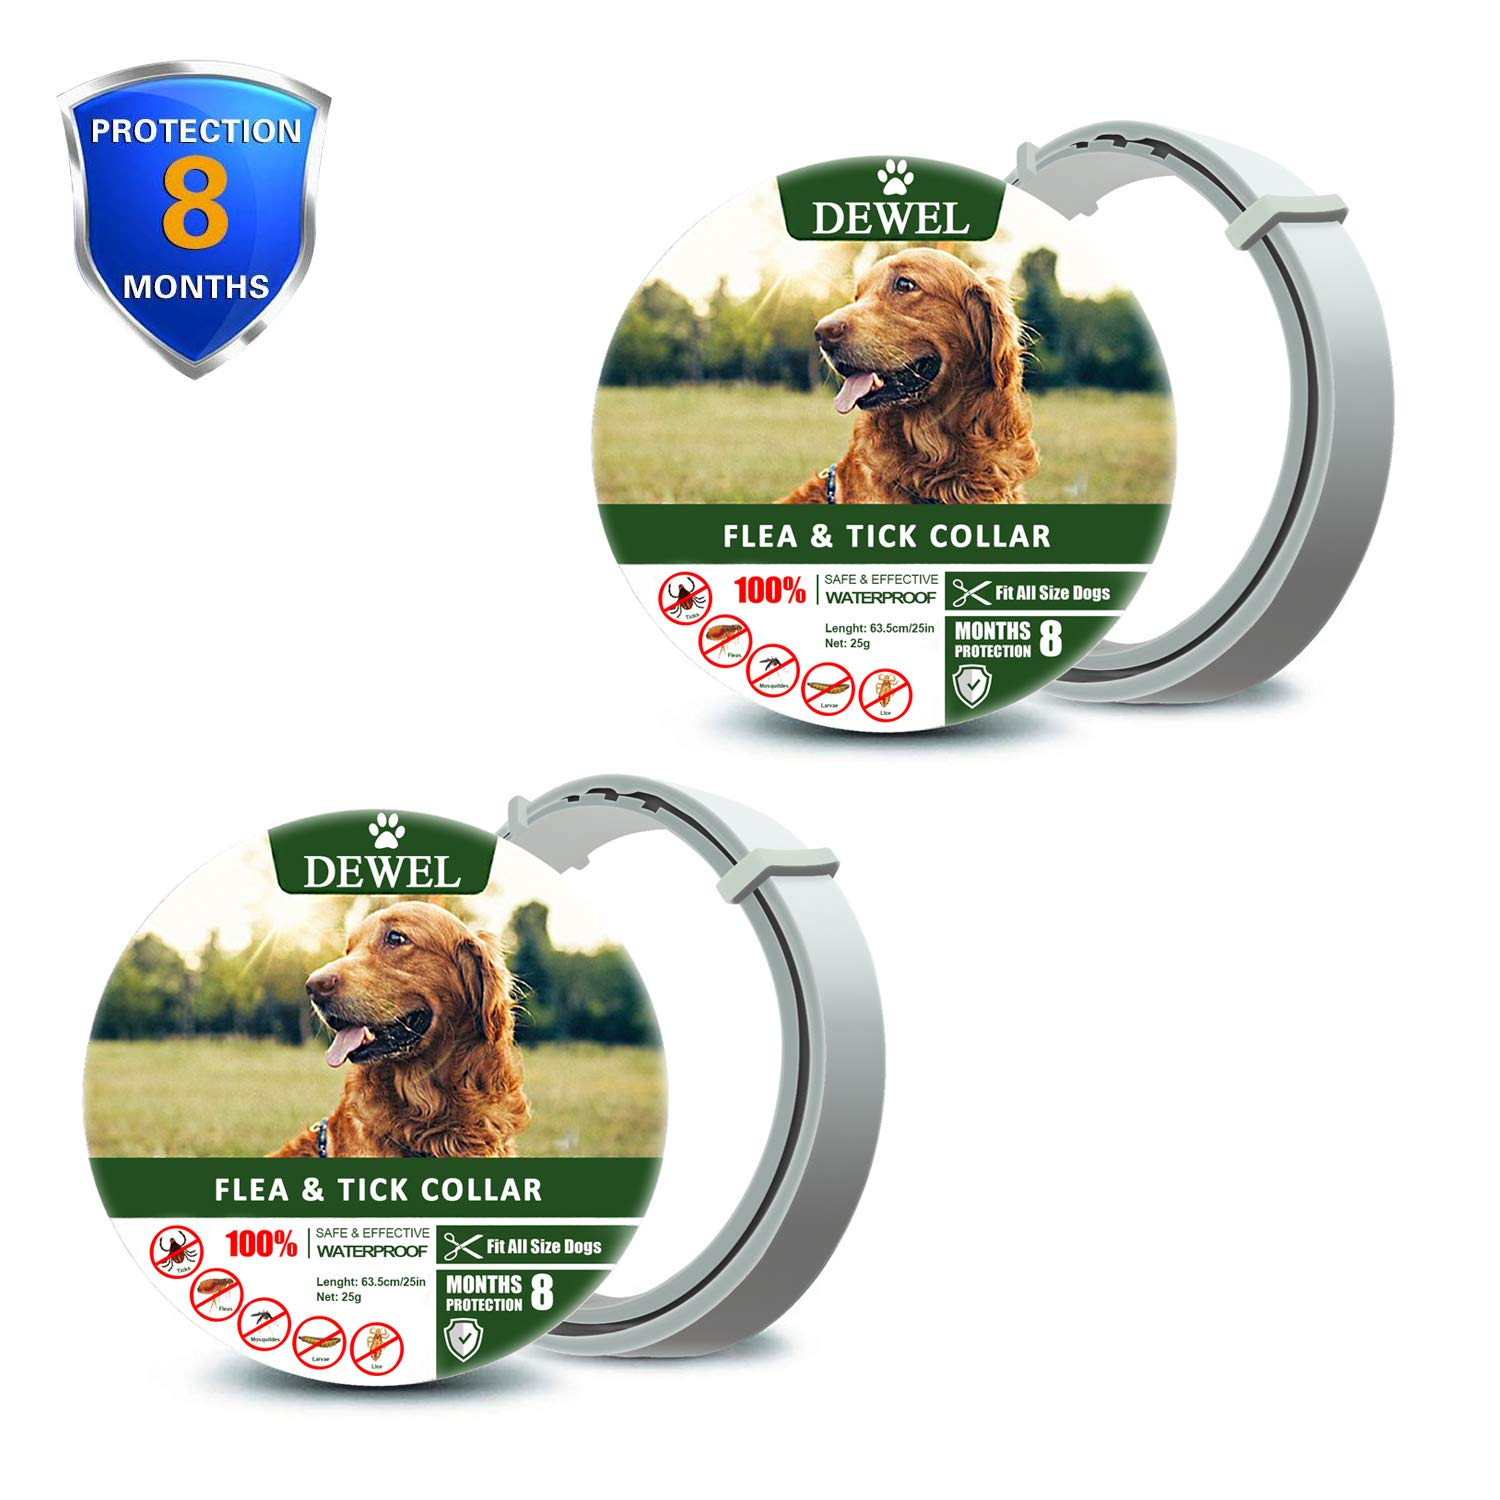 zpetii Flea & Tick Collar for Dog Waterproof Collars Fits All Large Medium & Small Dogs for 8 Months 2 Pack